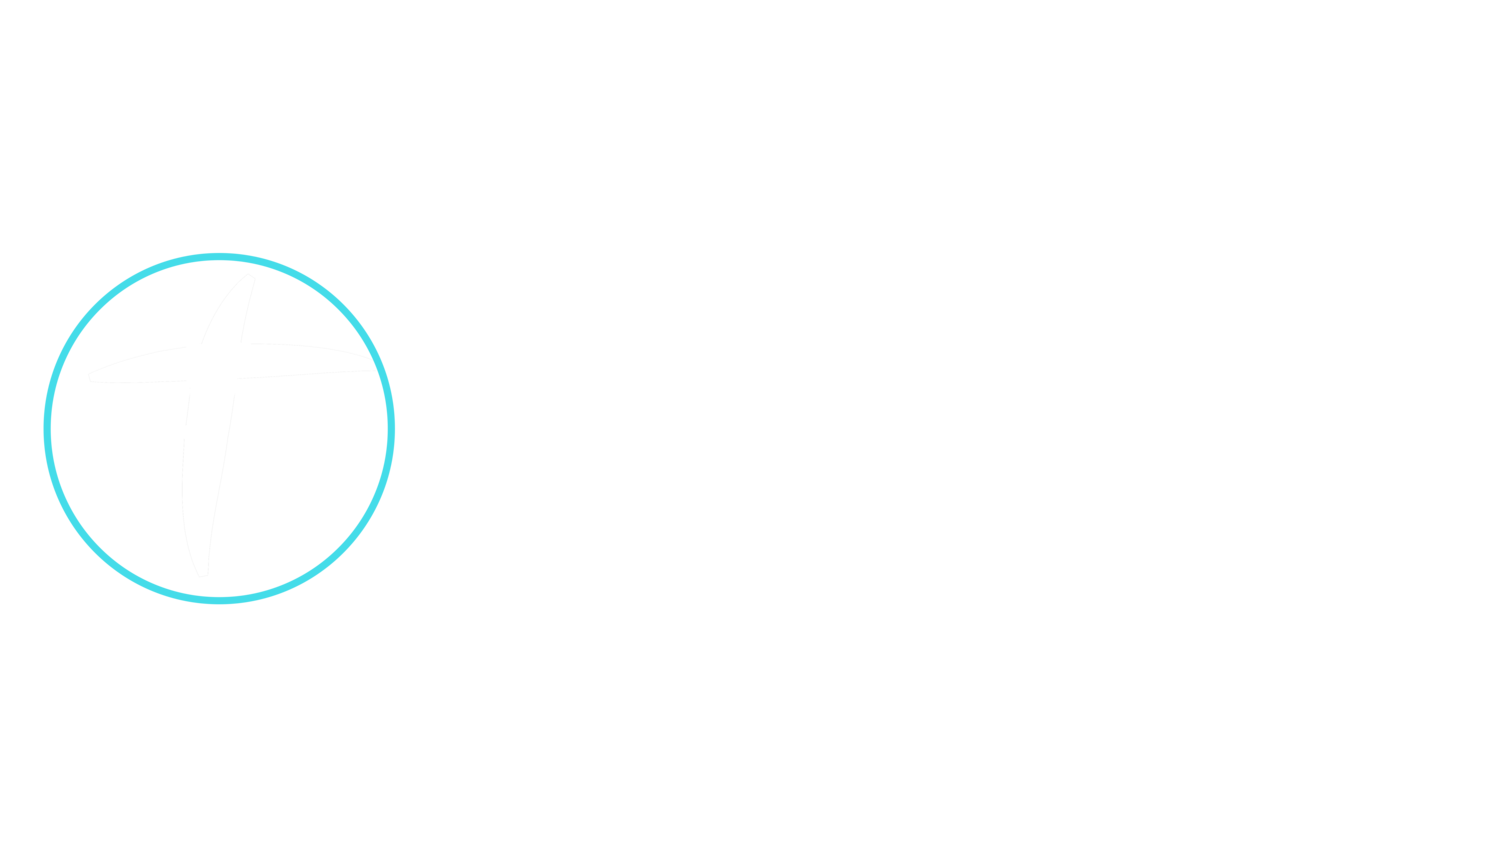 CrossPoint Wesleyan Church